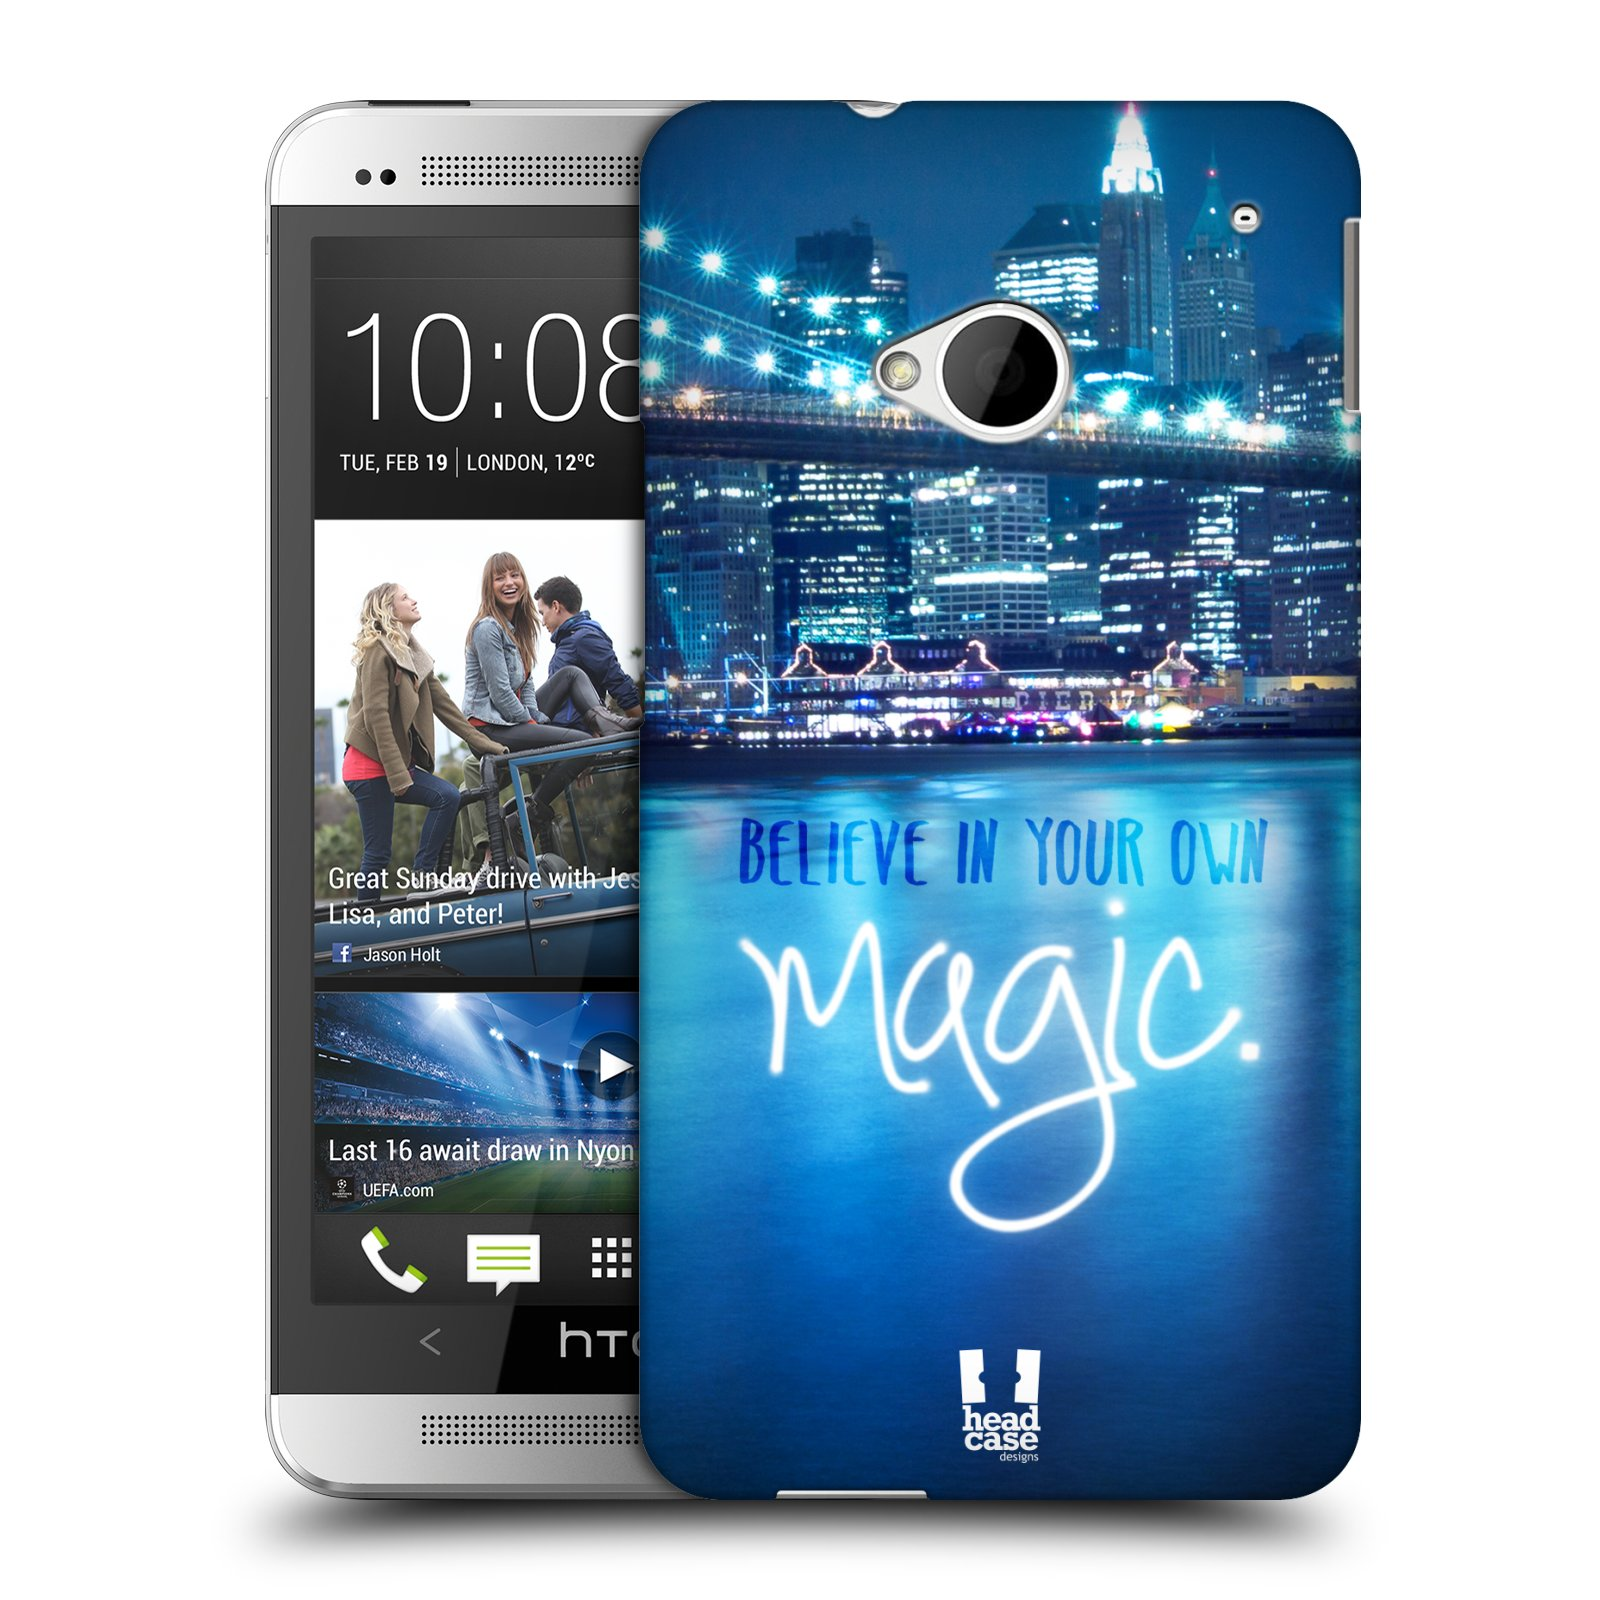 HEAD CASE DESIGNS WORDS TO LIVE BY SERIES 4 CASE COVER FOR HTC ONE